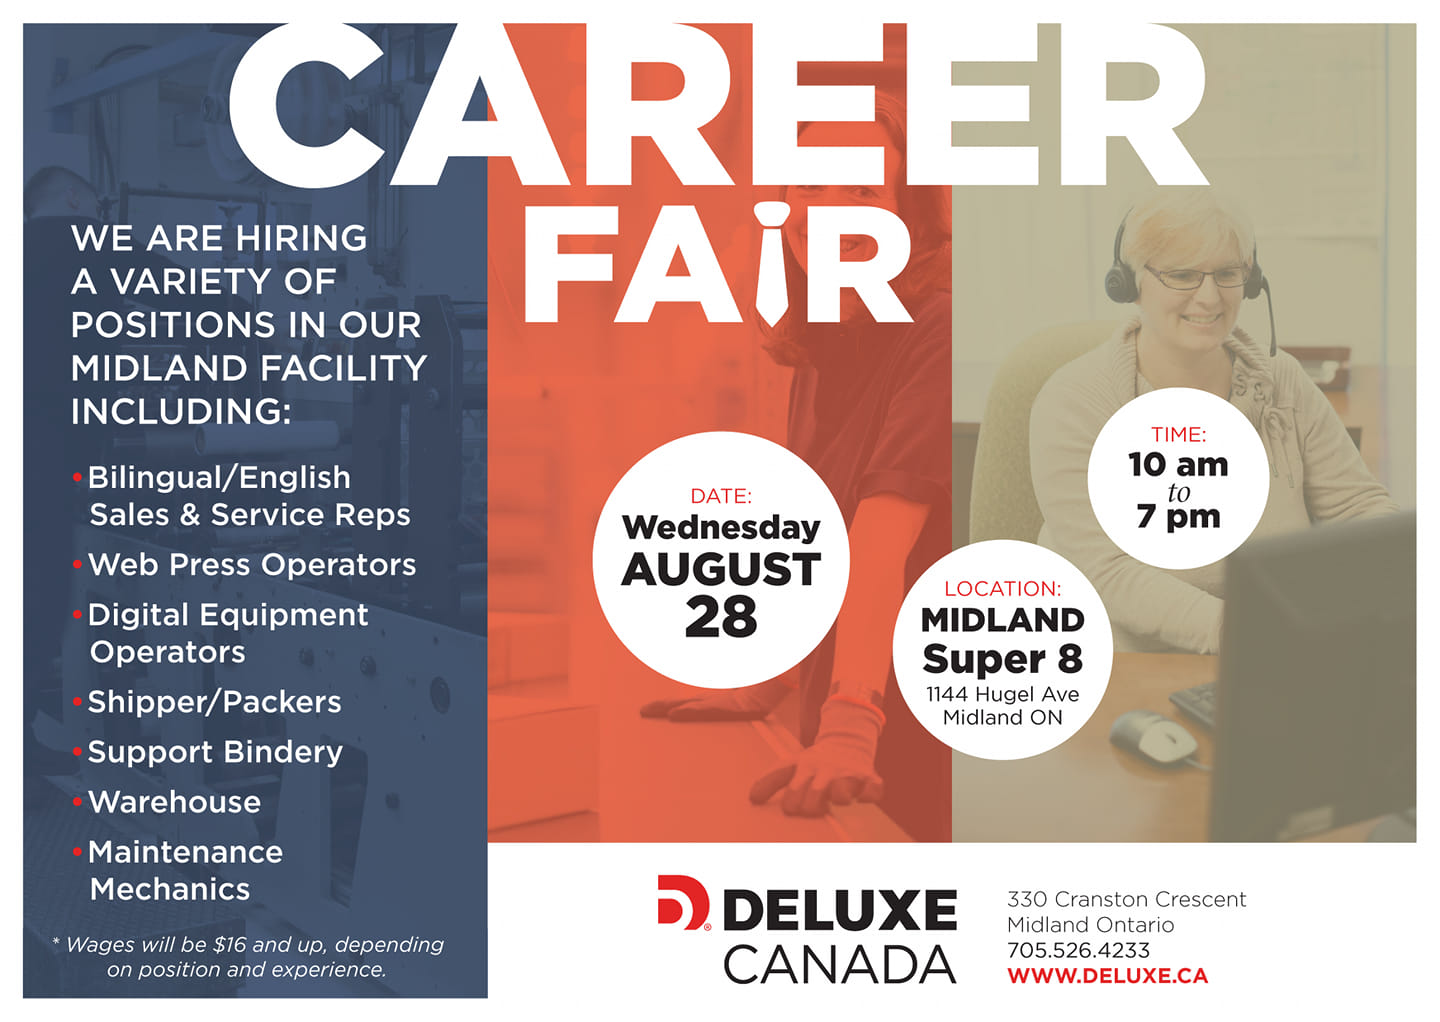 Deluxe Career Fair